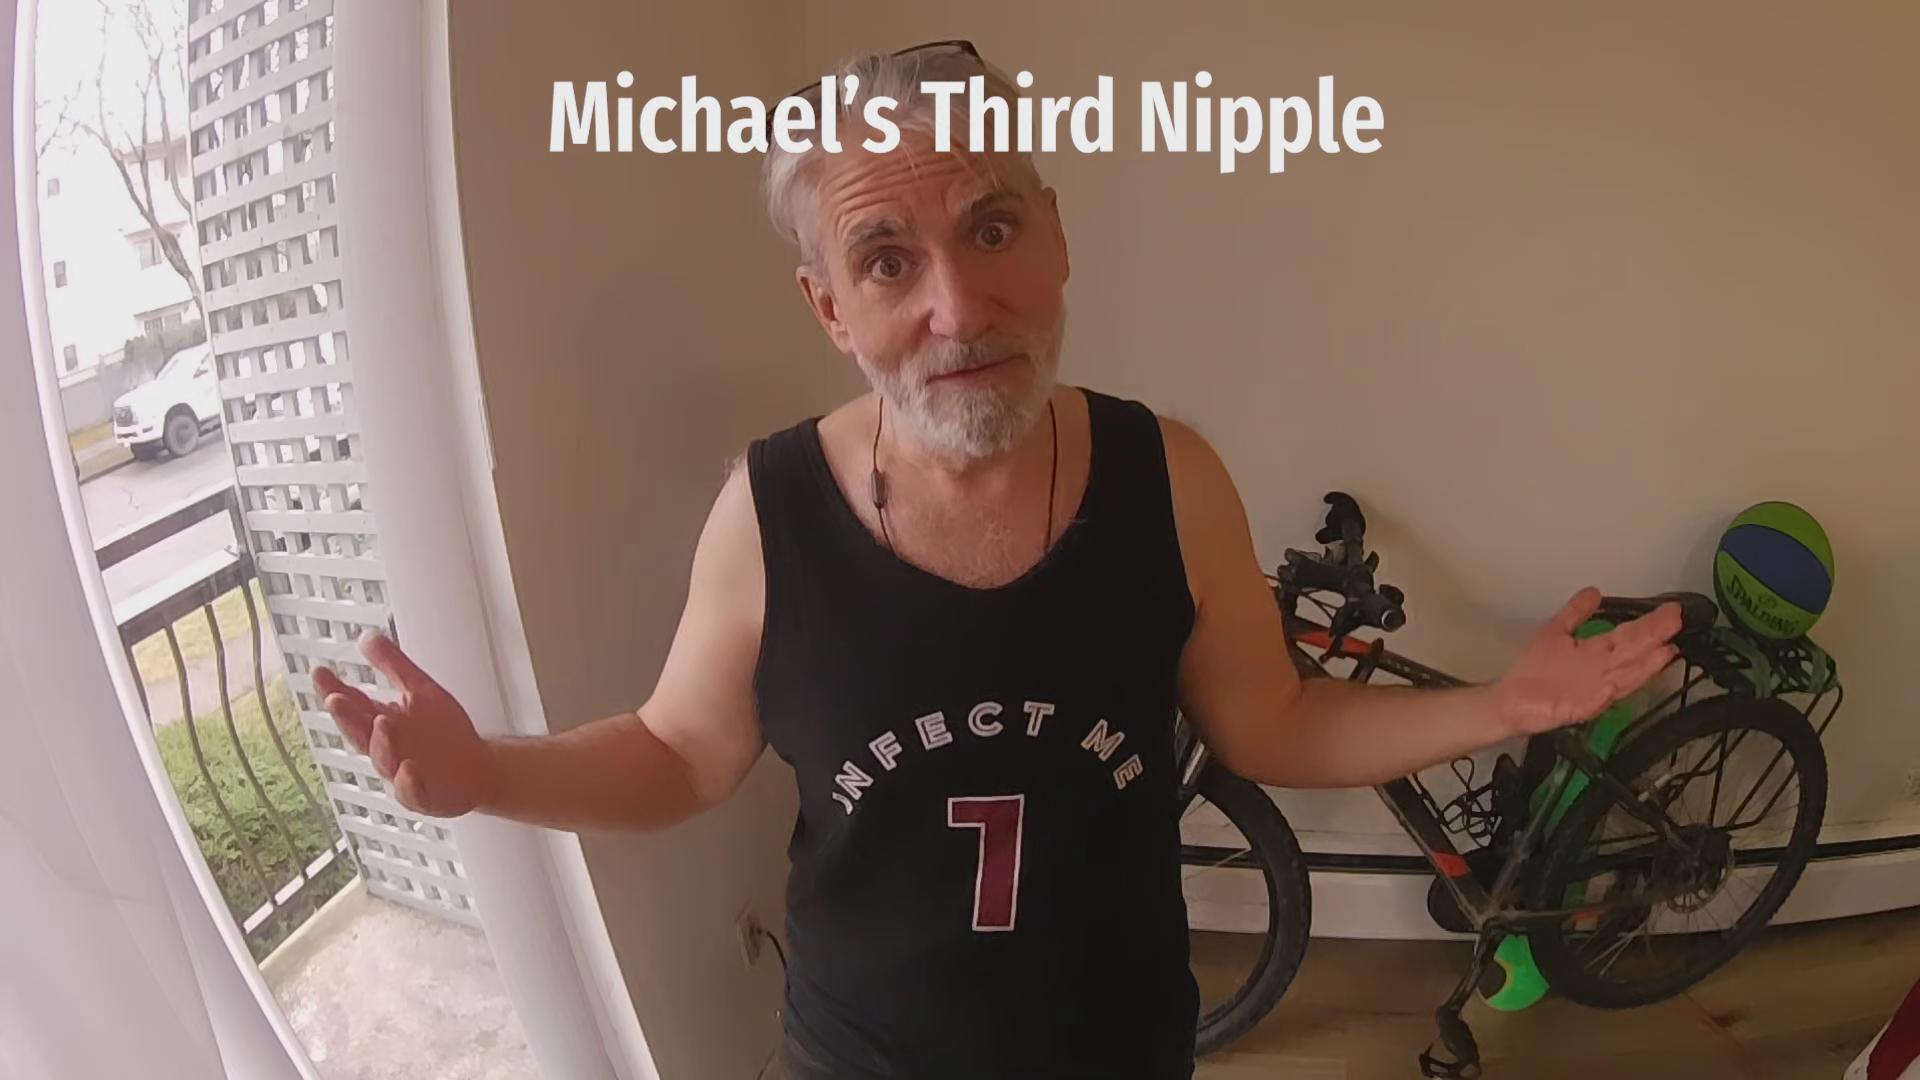 Michael's Third Nipple